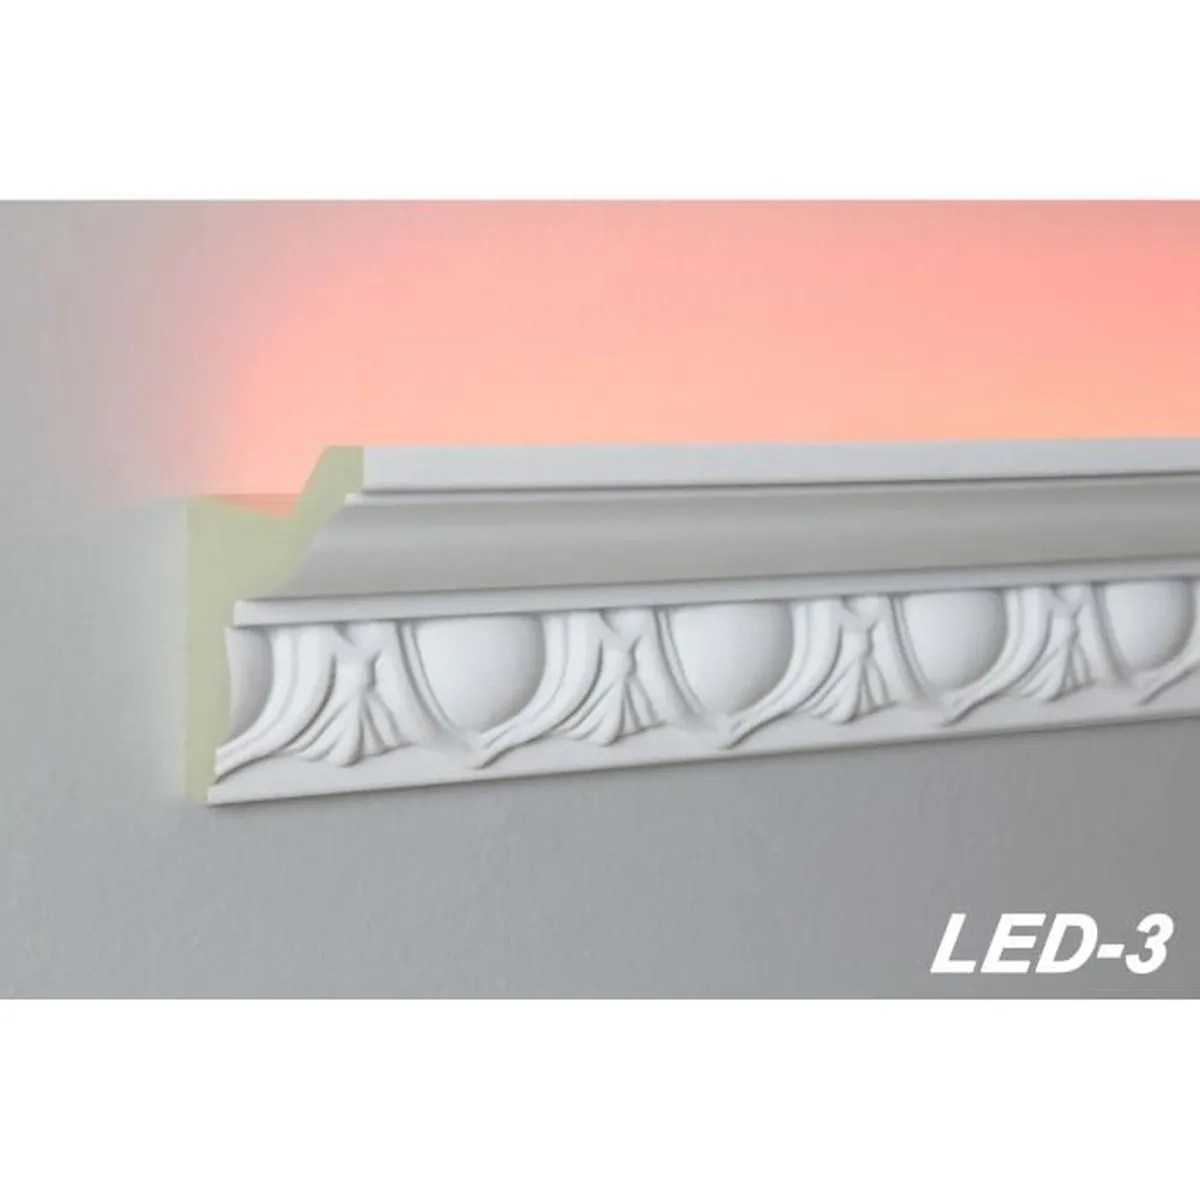 Corniche éclairage Indirect Led Corniche Plafond Eclairage Indirect